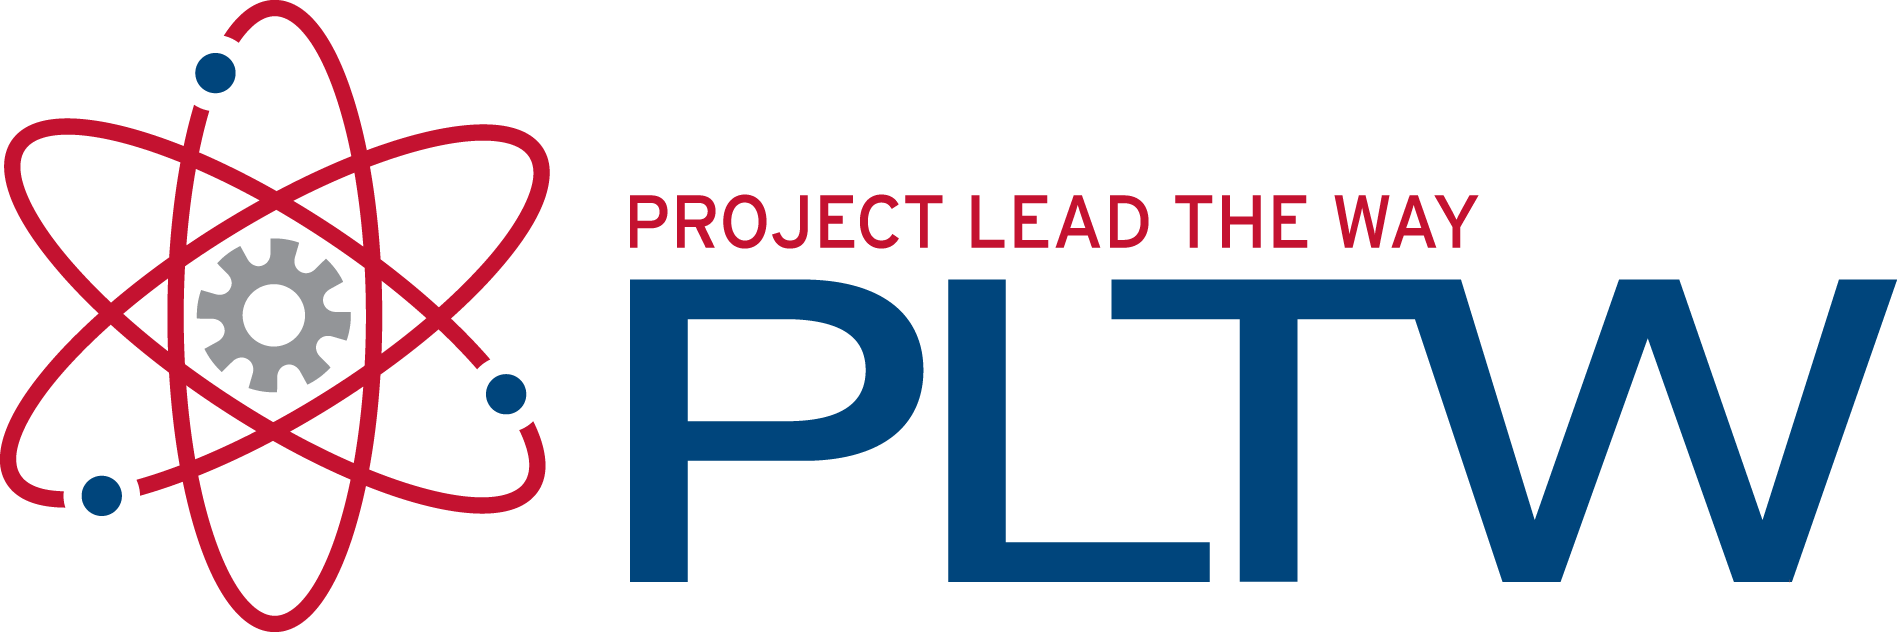 project lead the way pltw